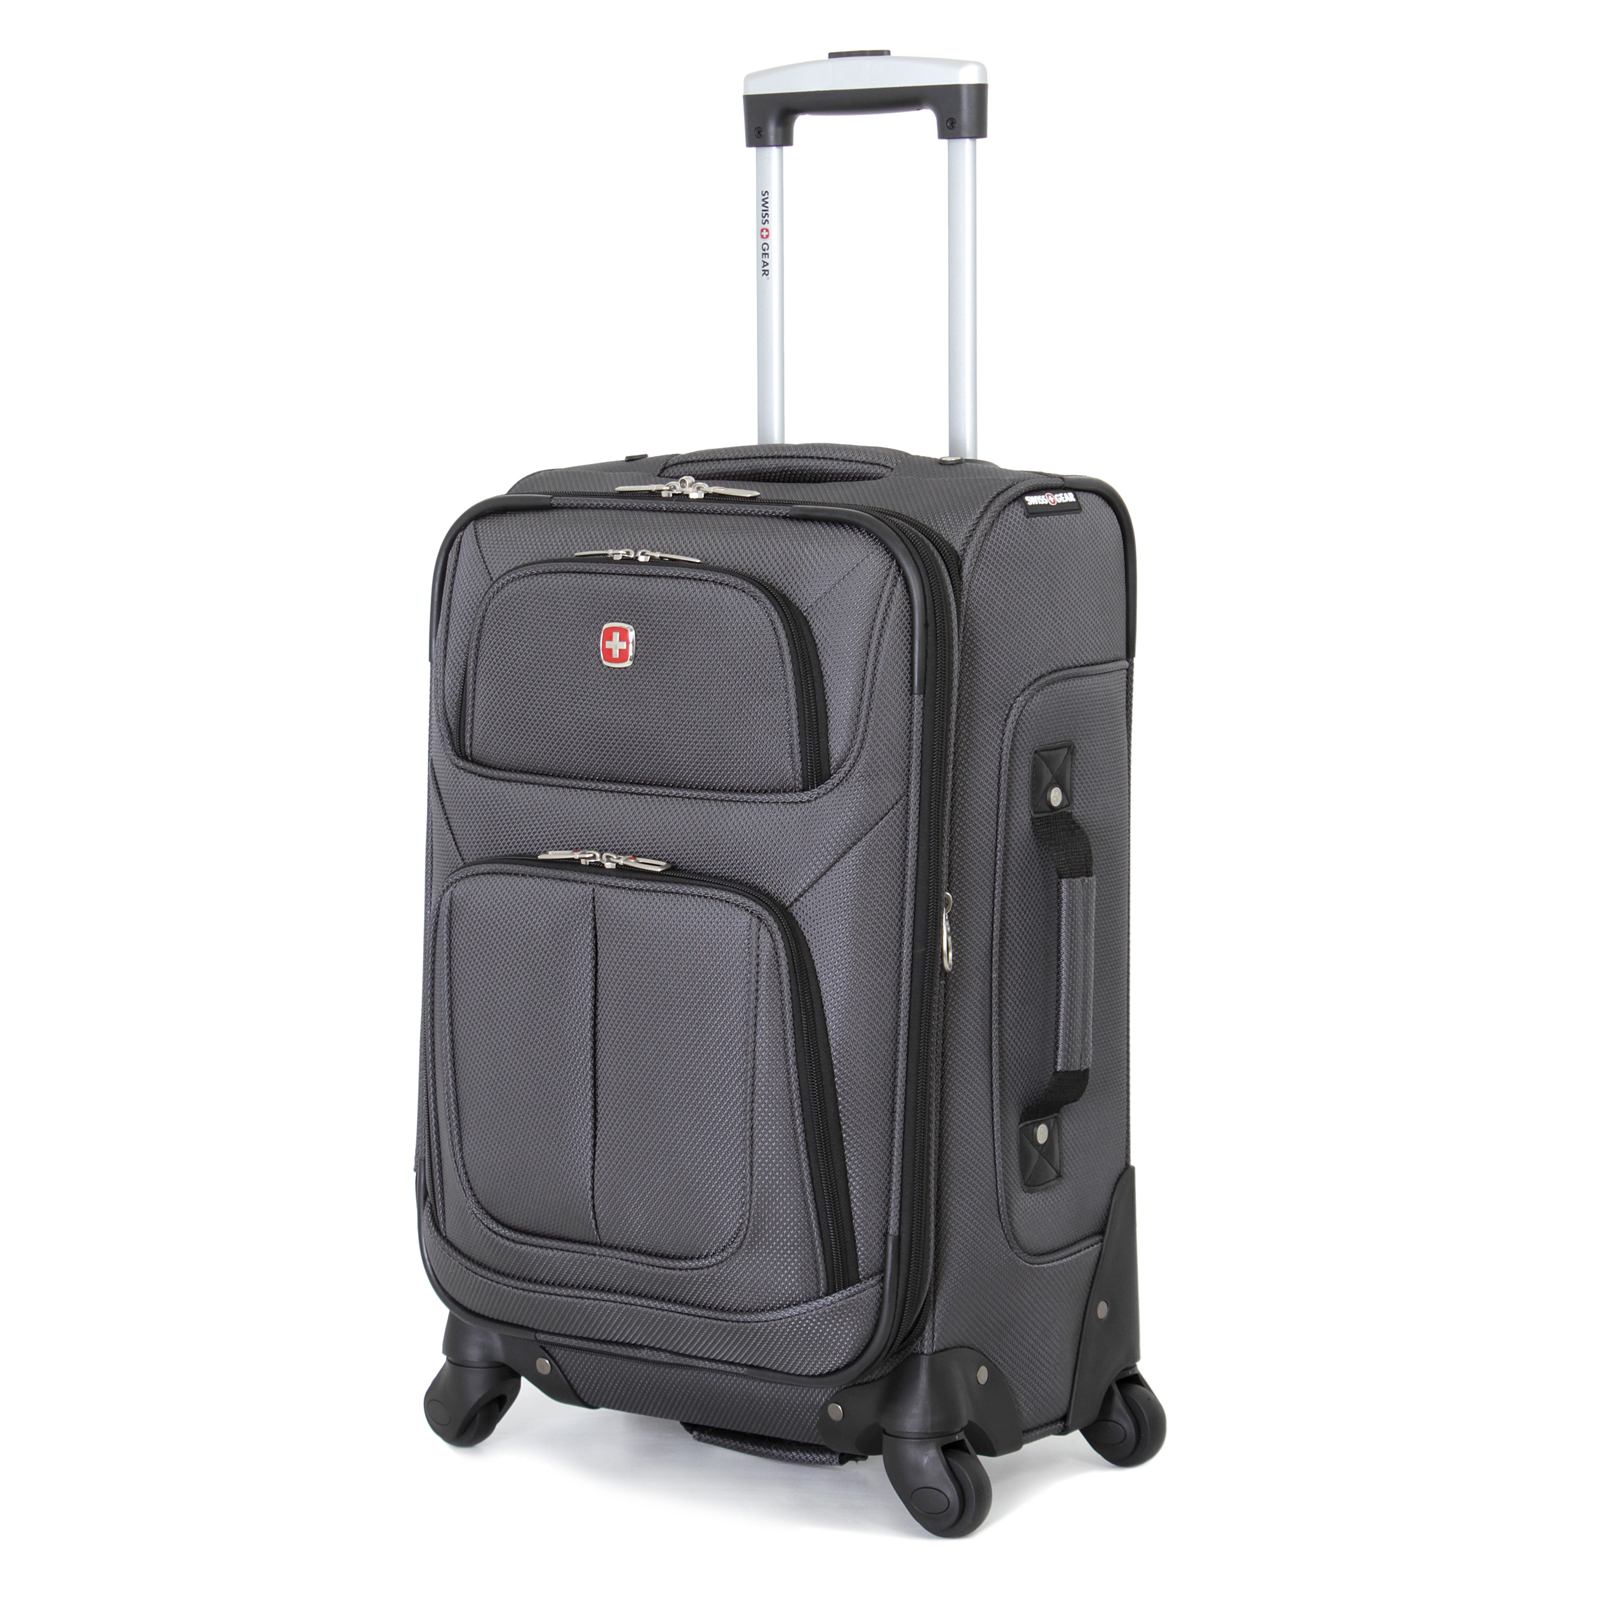 Swissgear Sa6283 21 Inch Carry On Expandable Spinner